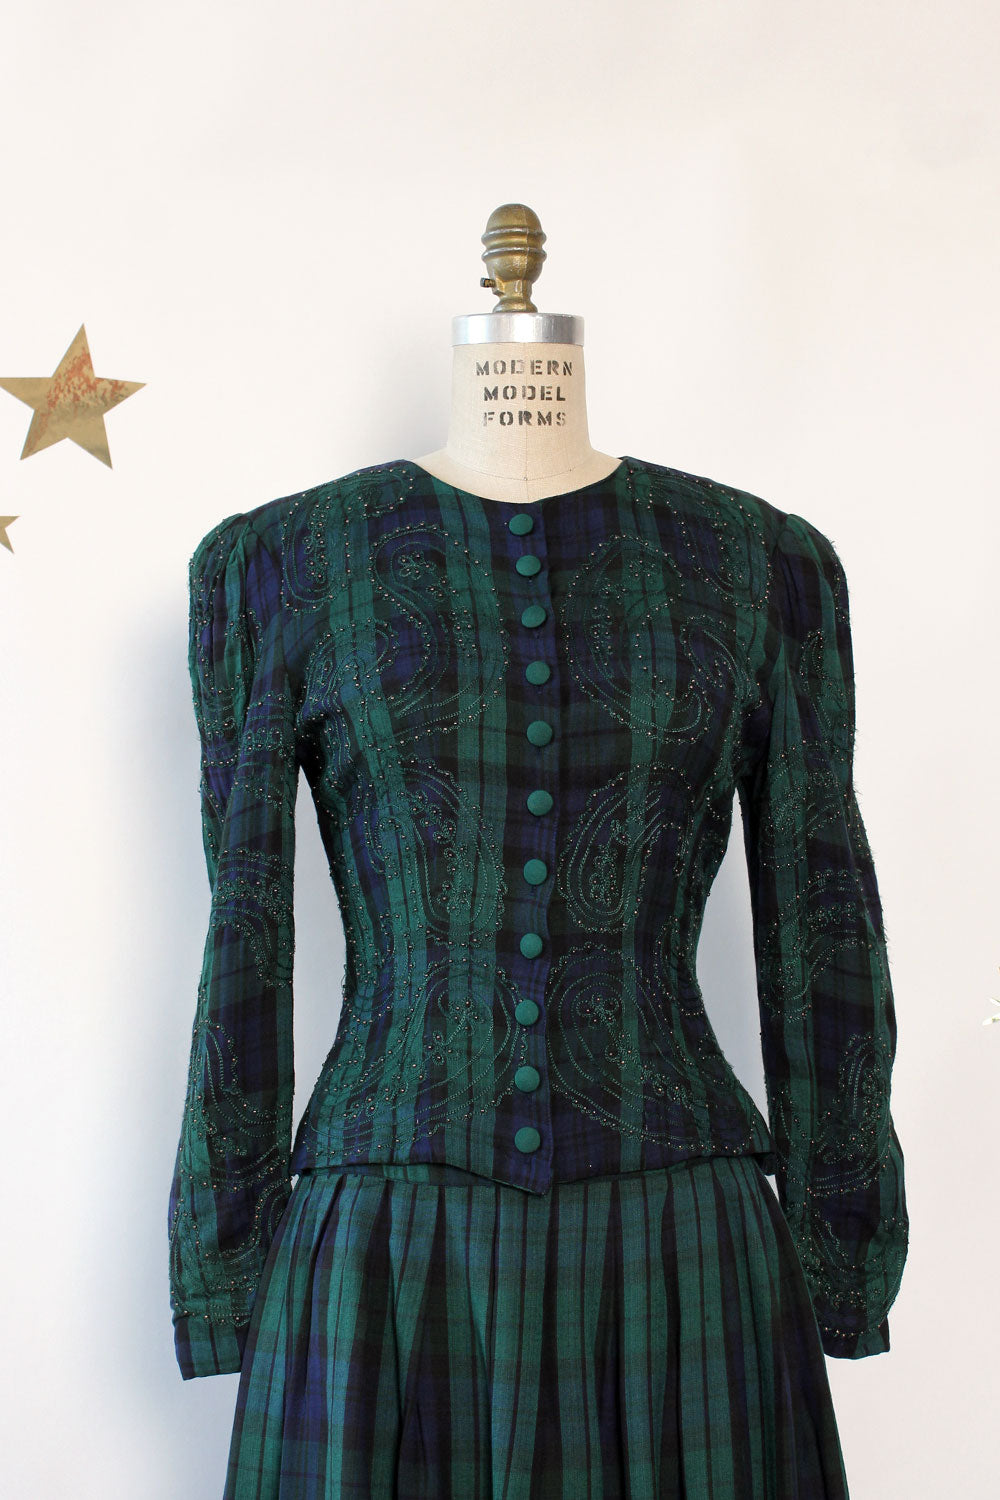 Elizabeth Beaded Tartan Set S/M